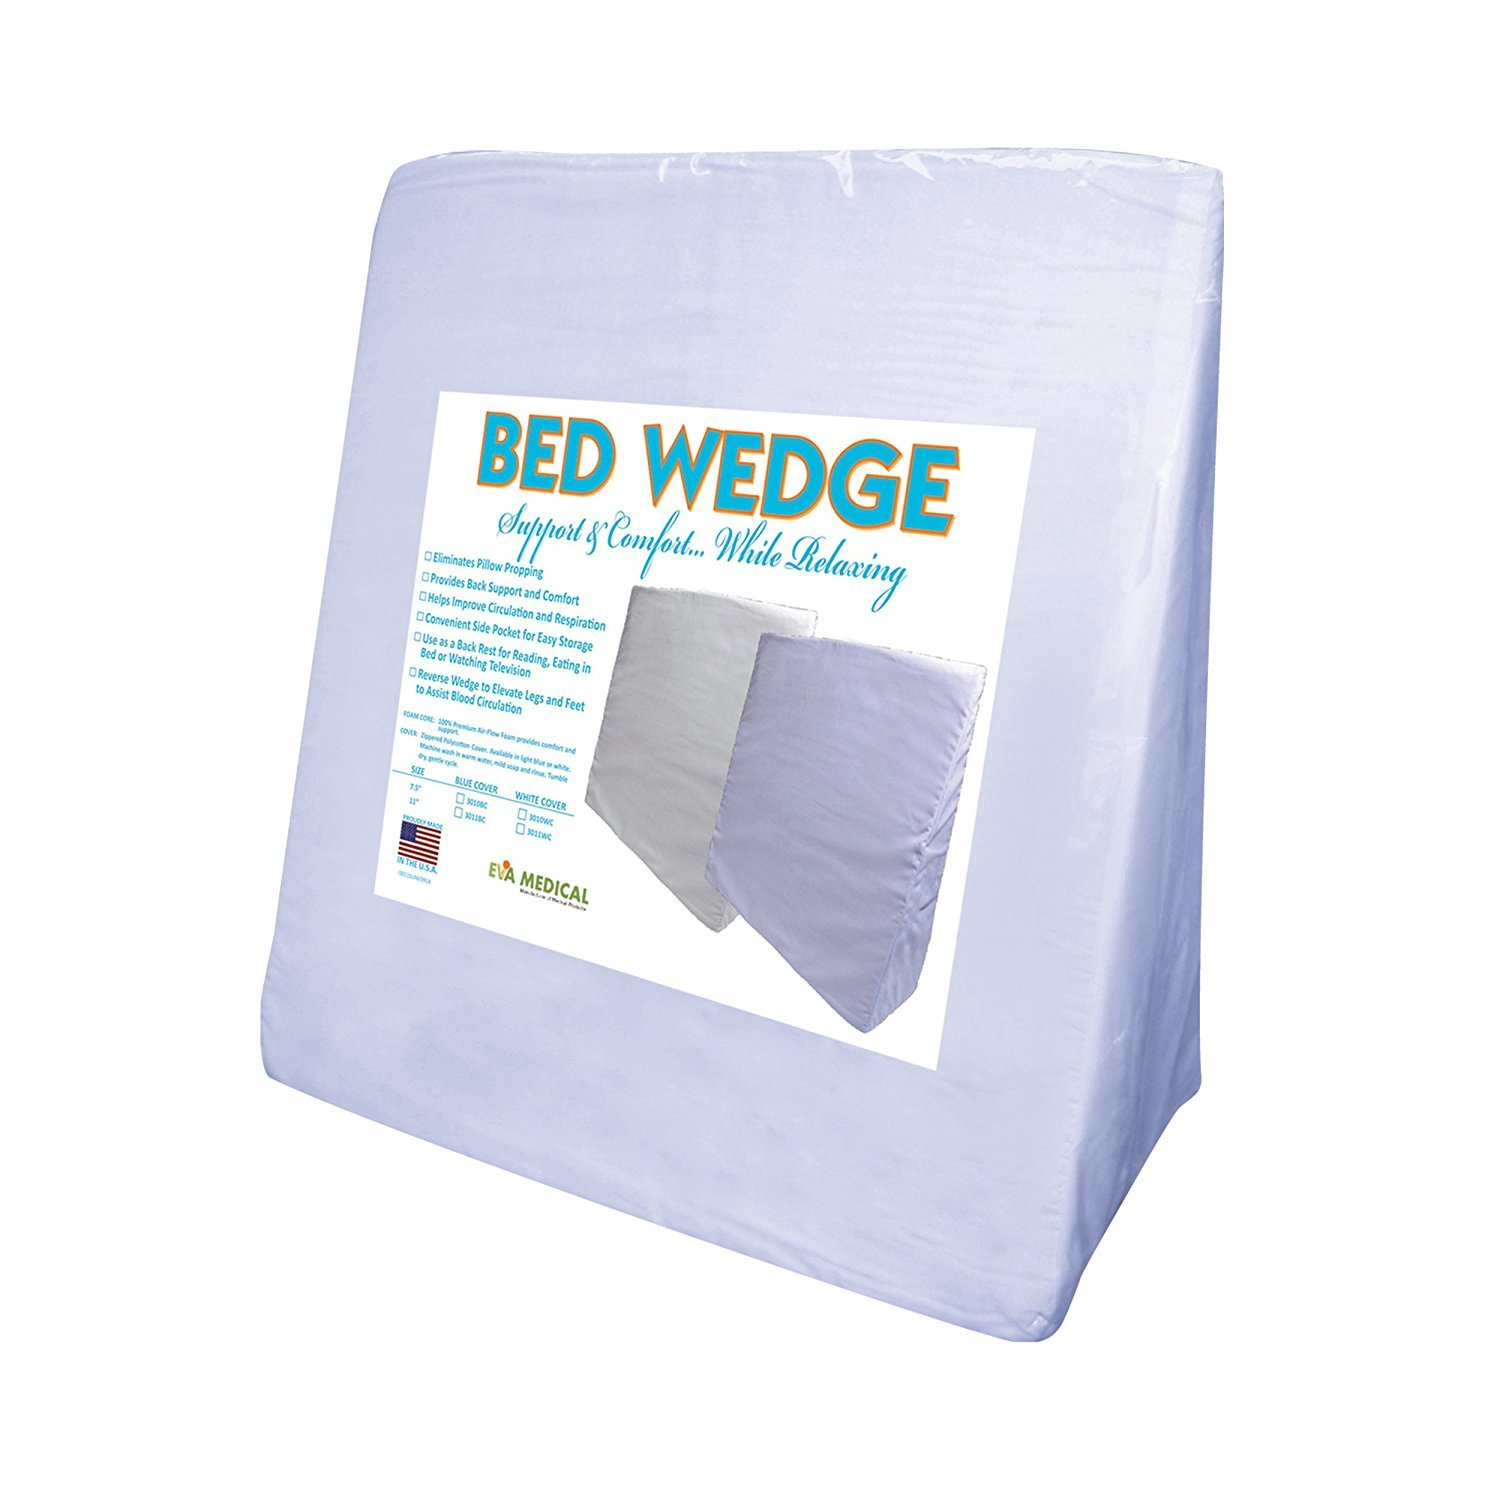 Bed wedge bed bath and beyond - Amazon Com Eva Medical Wedge Bed Pillow 22 X 22 X 7 5 With Blue Pillow Cover Made In Usa Health Personal Care